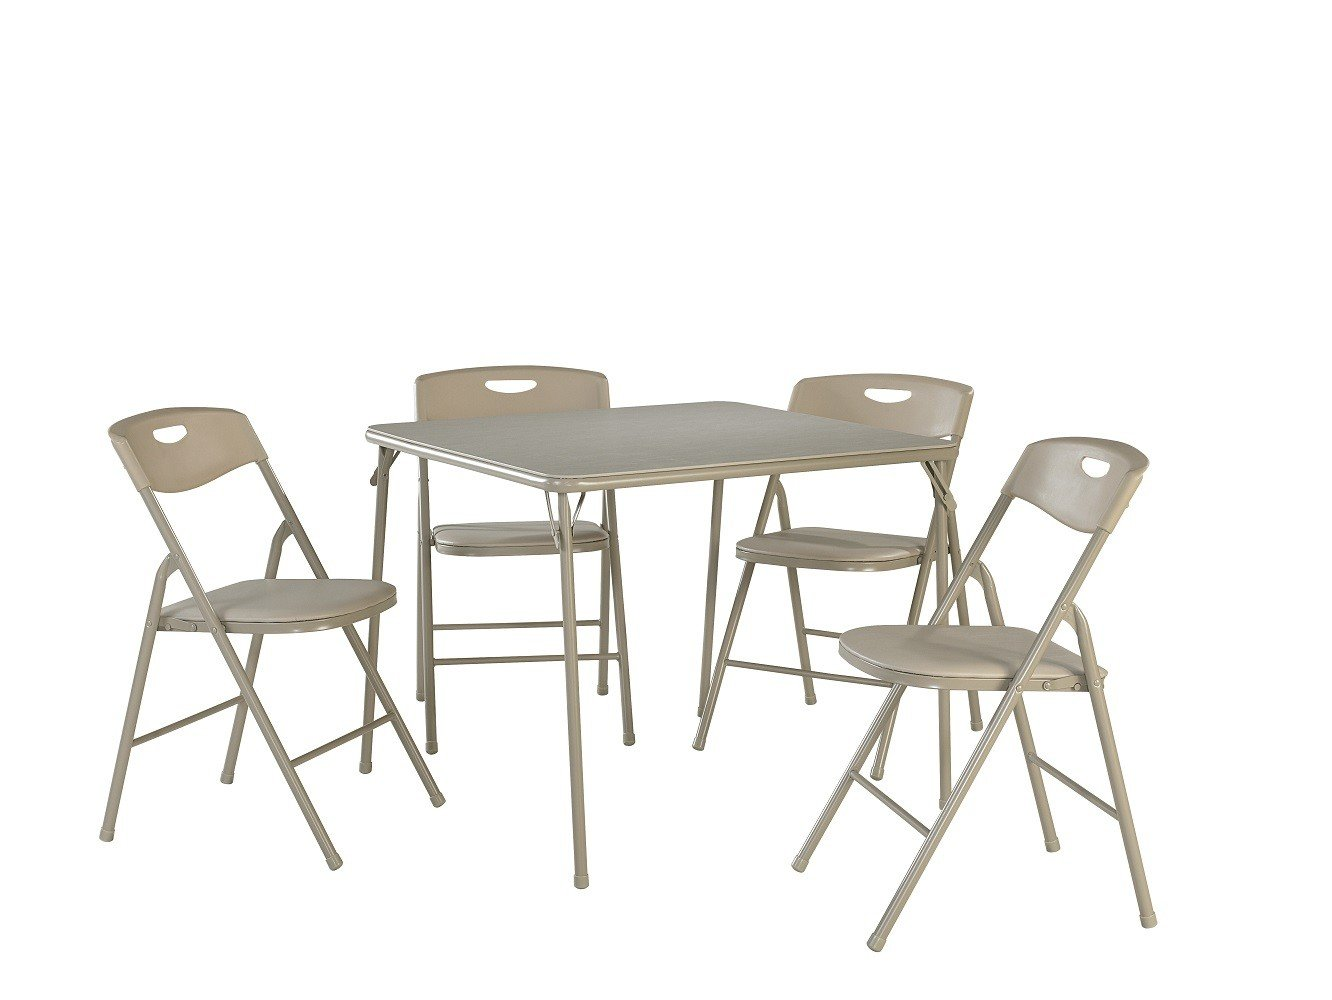 Amazon.com Cosco 5-Piece Folding Table and Chair Set Apple Green Kitchen u0026 Dining  sc 1 st  Amazon.com & Amazon.com: Cosco 5-Piece Folding Table and Chair Set Apple Green ...